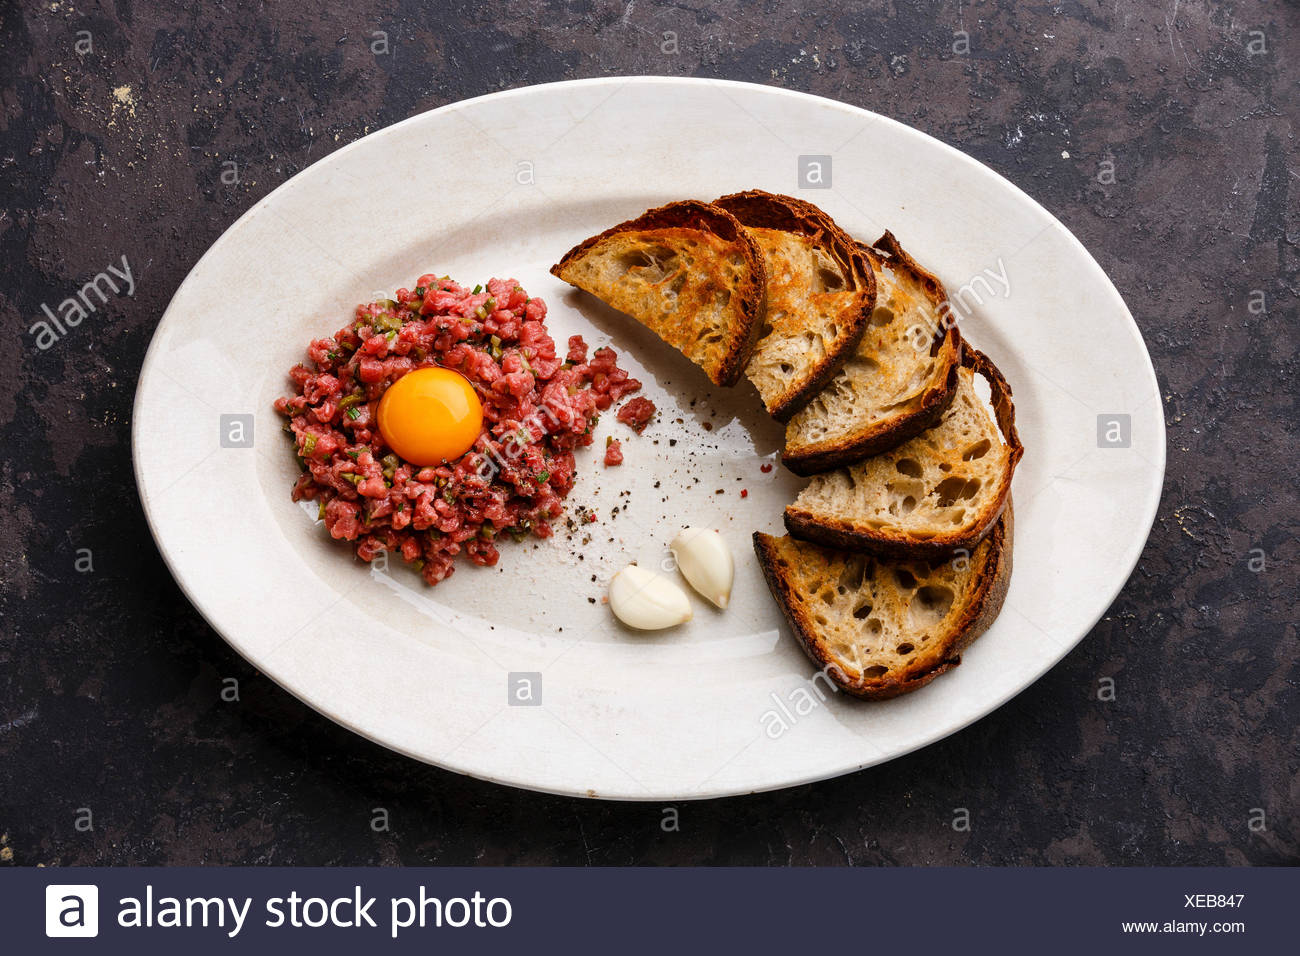 Beef tartare with pickled cucumber and toasts on white plate on dark background - Stock Image